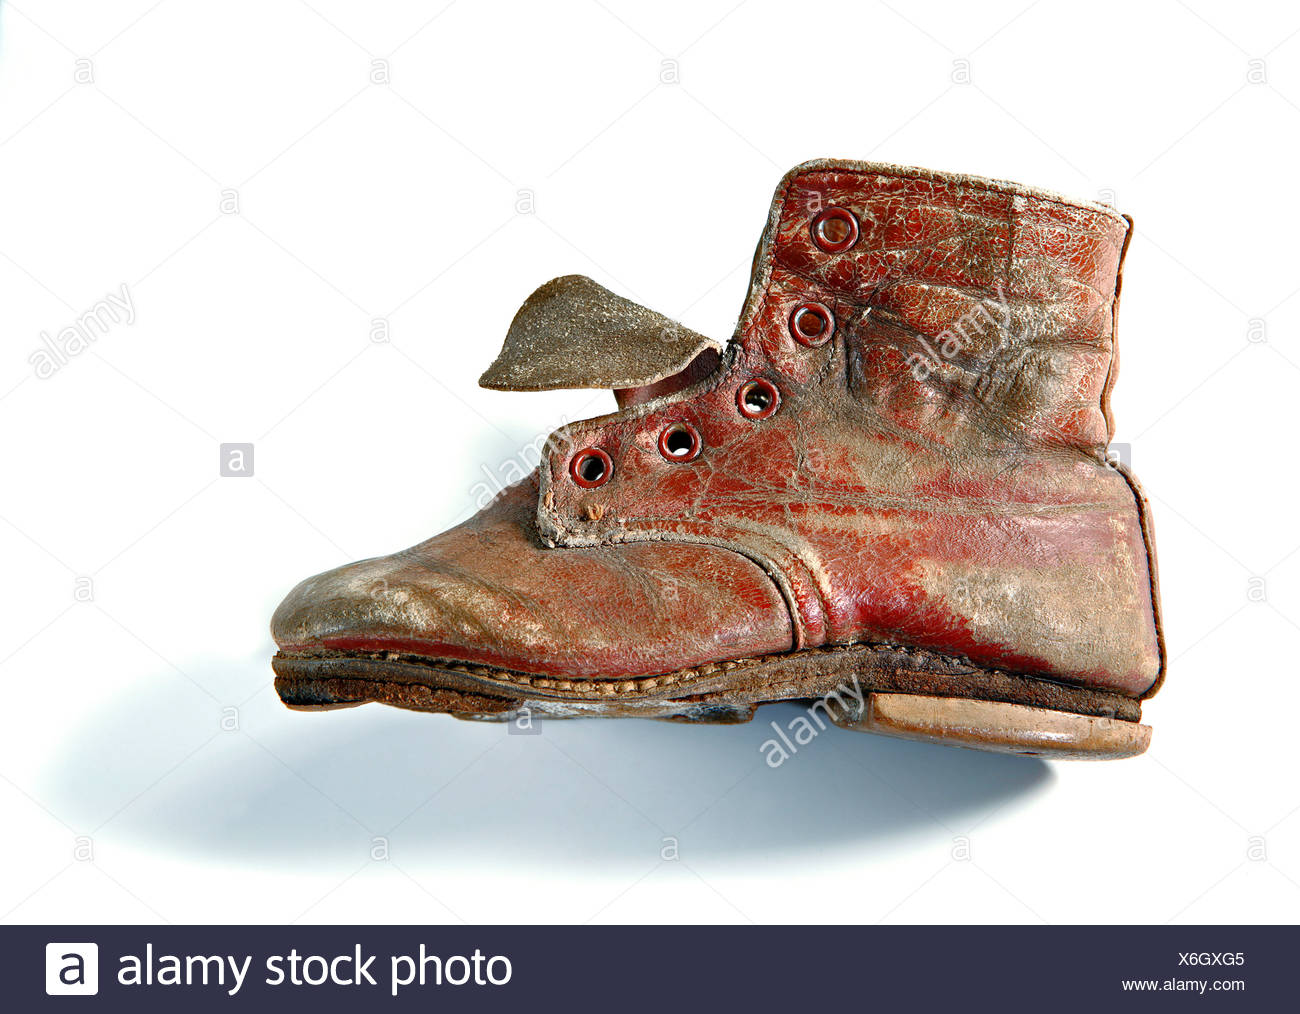 Worn-out children's shoe - Stock Image